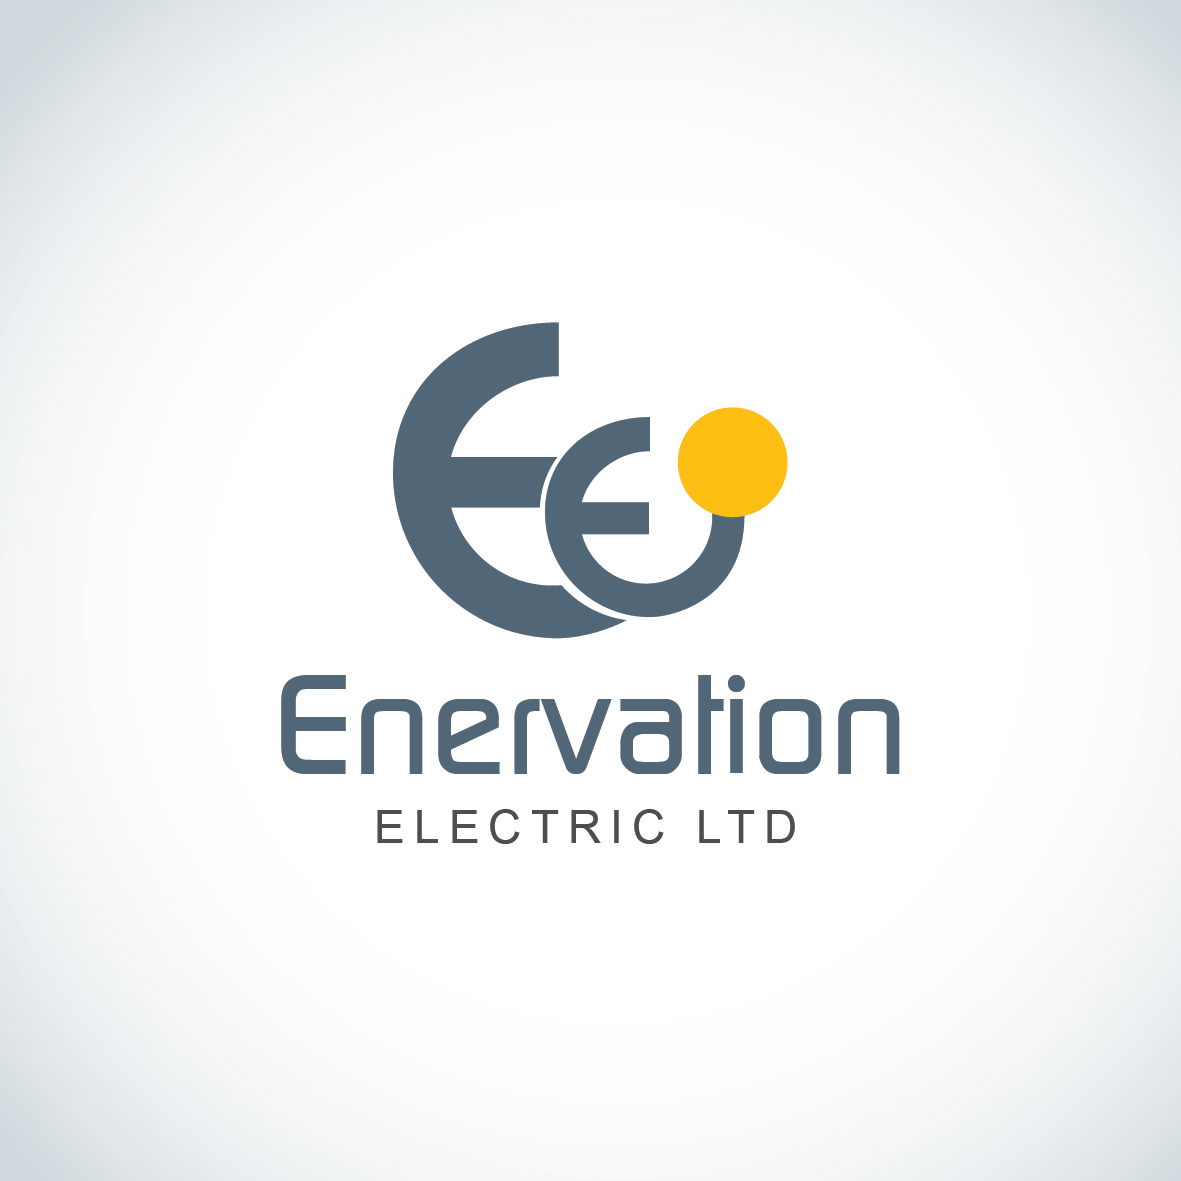 Business Card Design by aesthetic-art - Entry No. 137 in the Business Card Design Contest Enervation Logo Design.